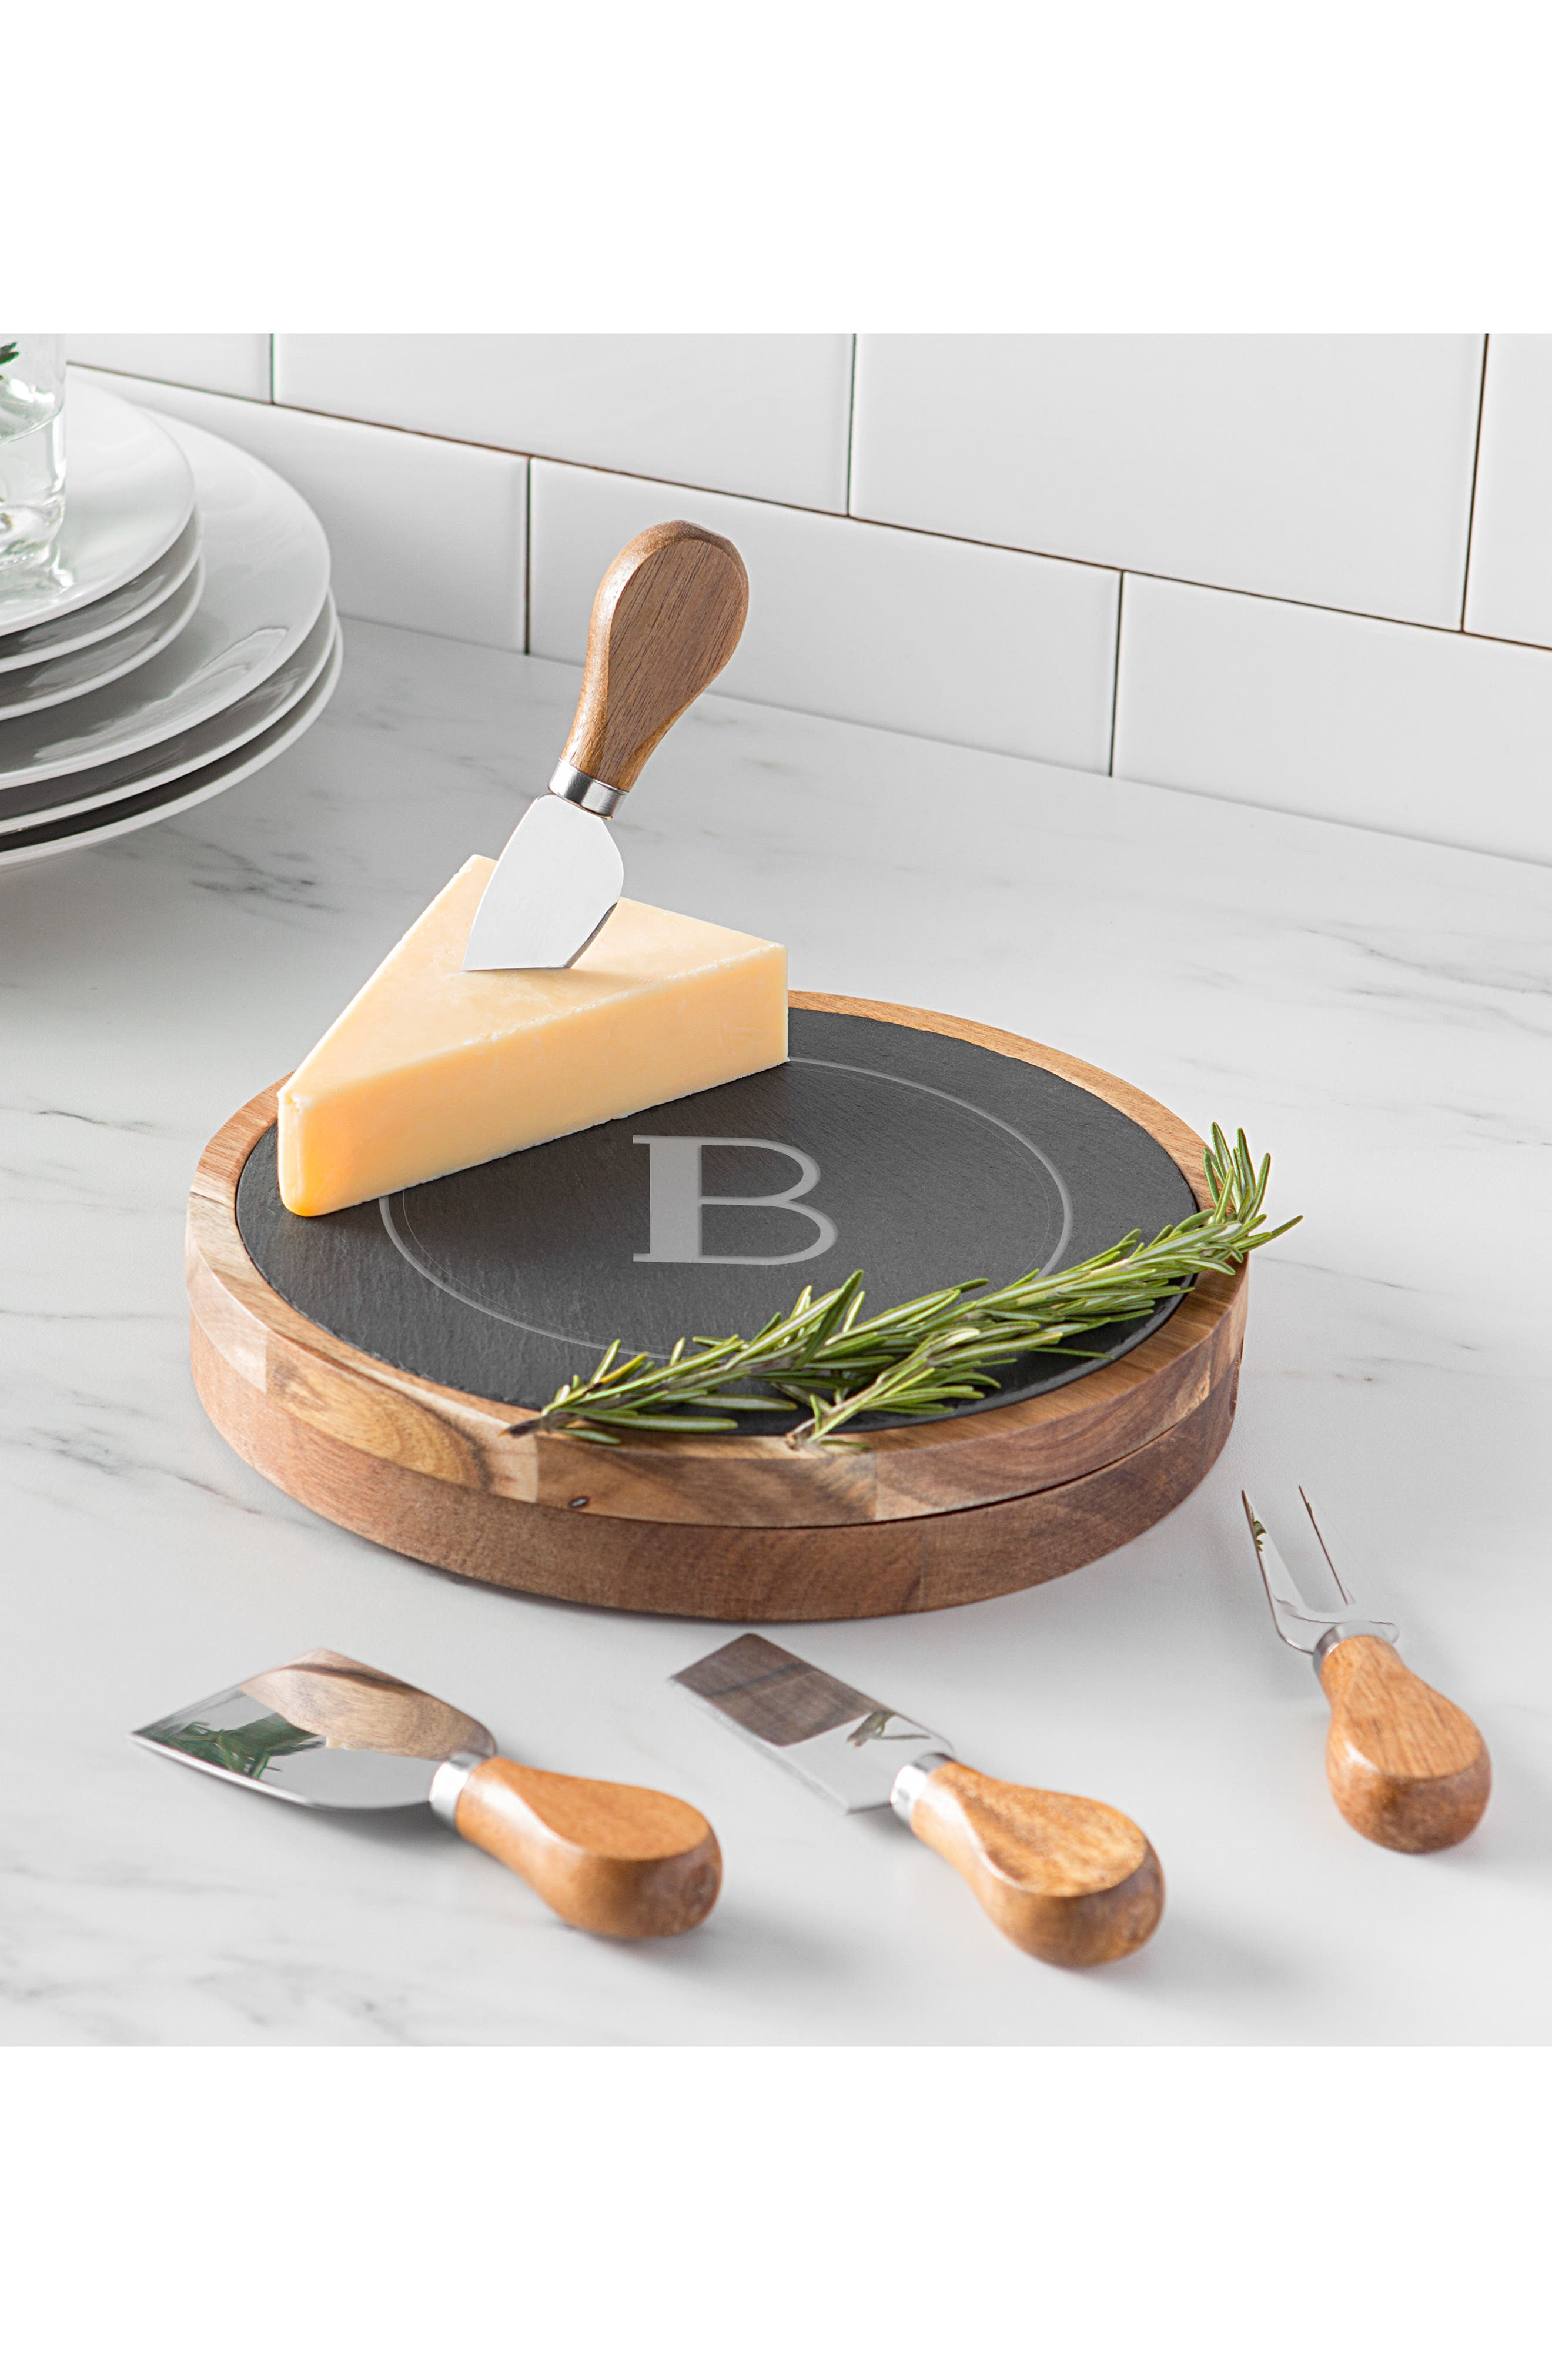 Monogram 5-Piece Cheese Board & Utensil Set,                             Alternate thumbnail 7, color,                             BROWN